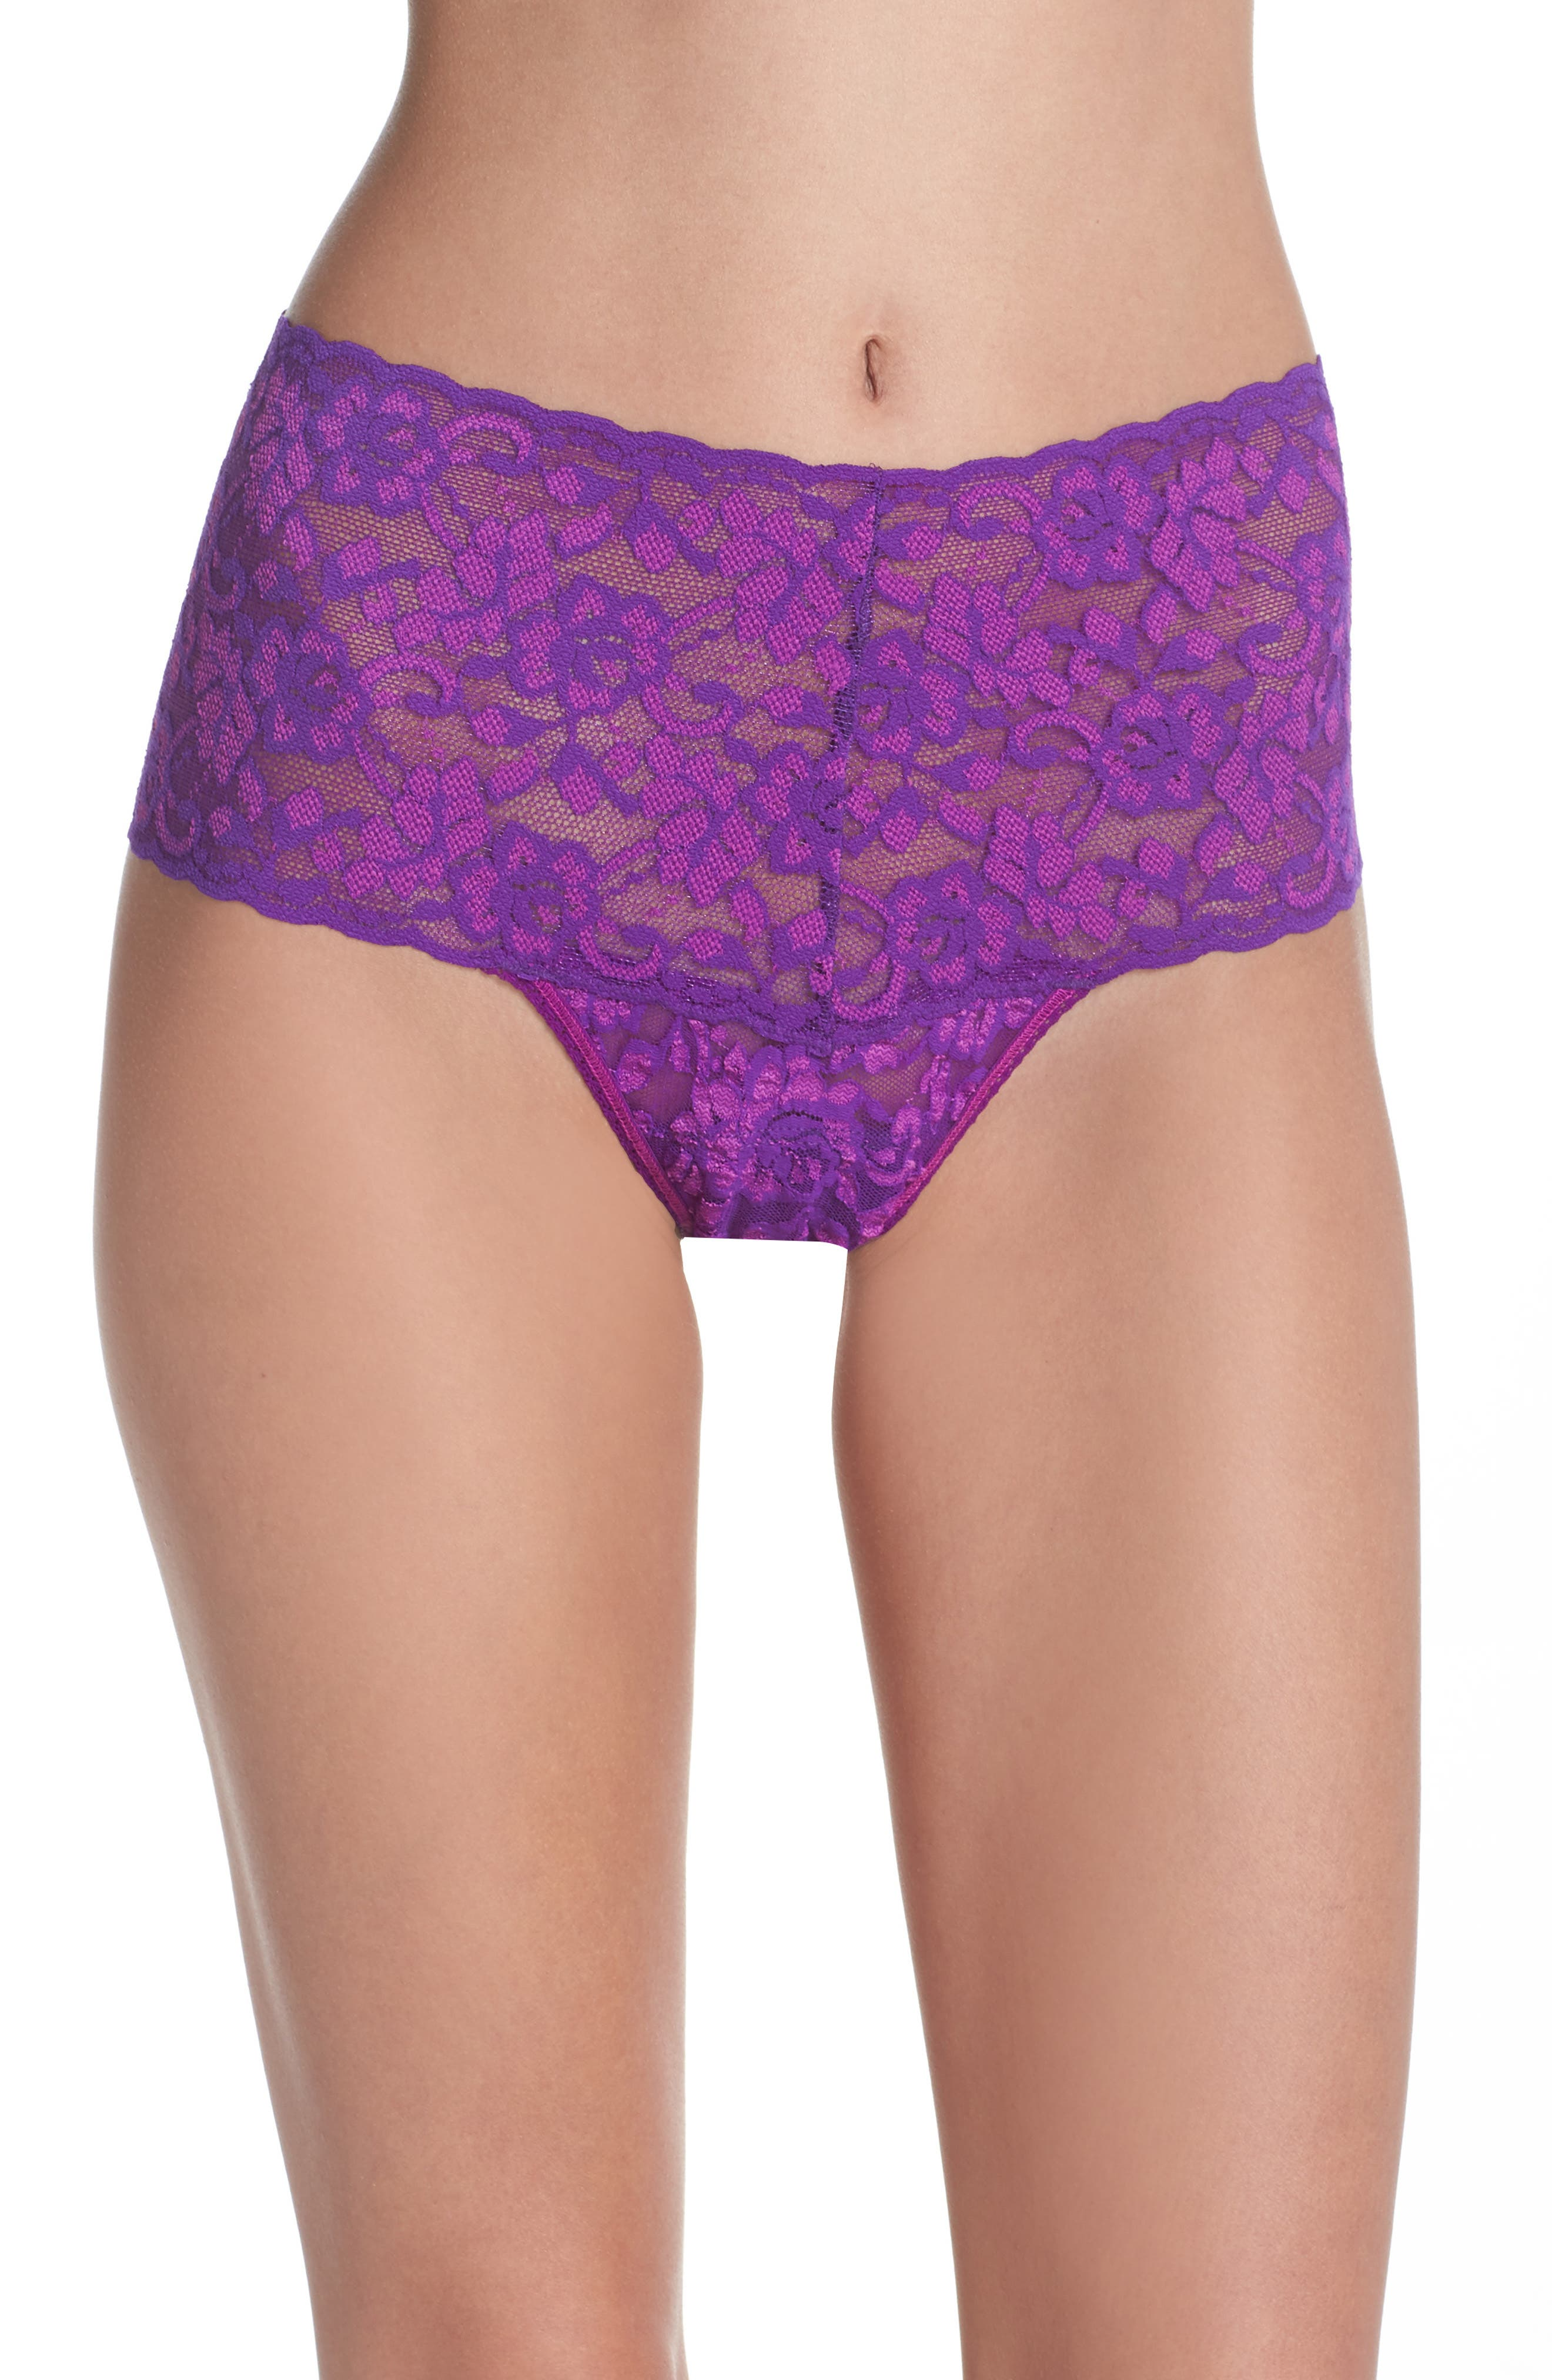 Alternate Image 1 Selected - Hanky Panky Cross Dye Lace Retro Thong